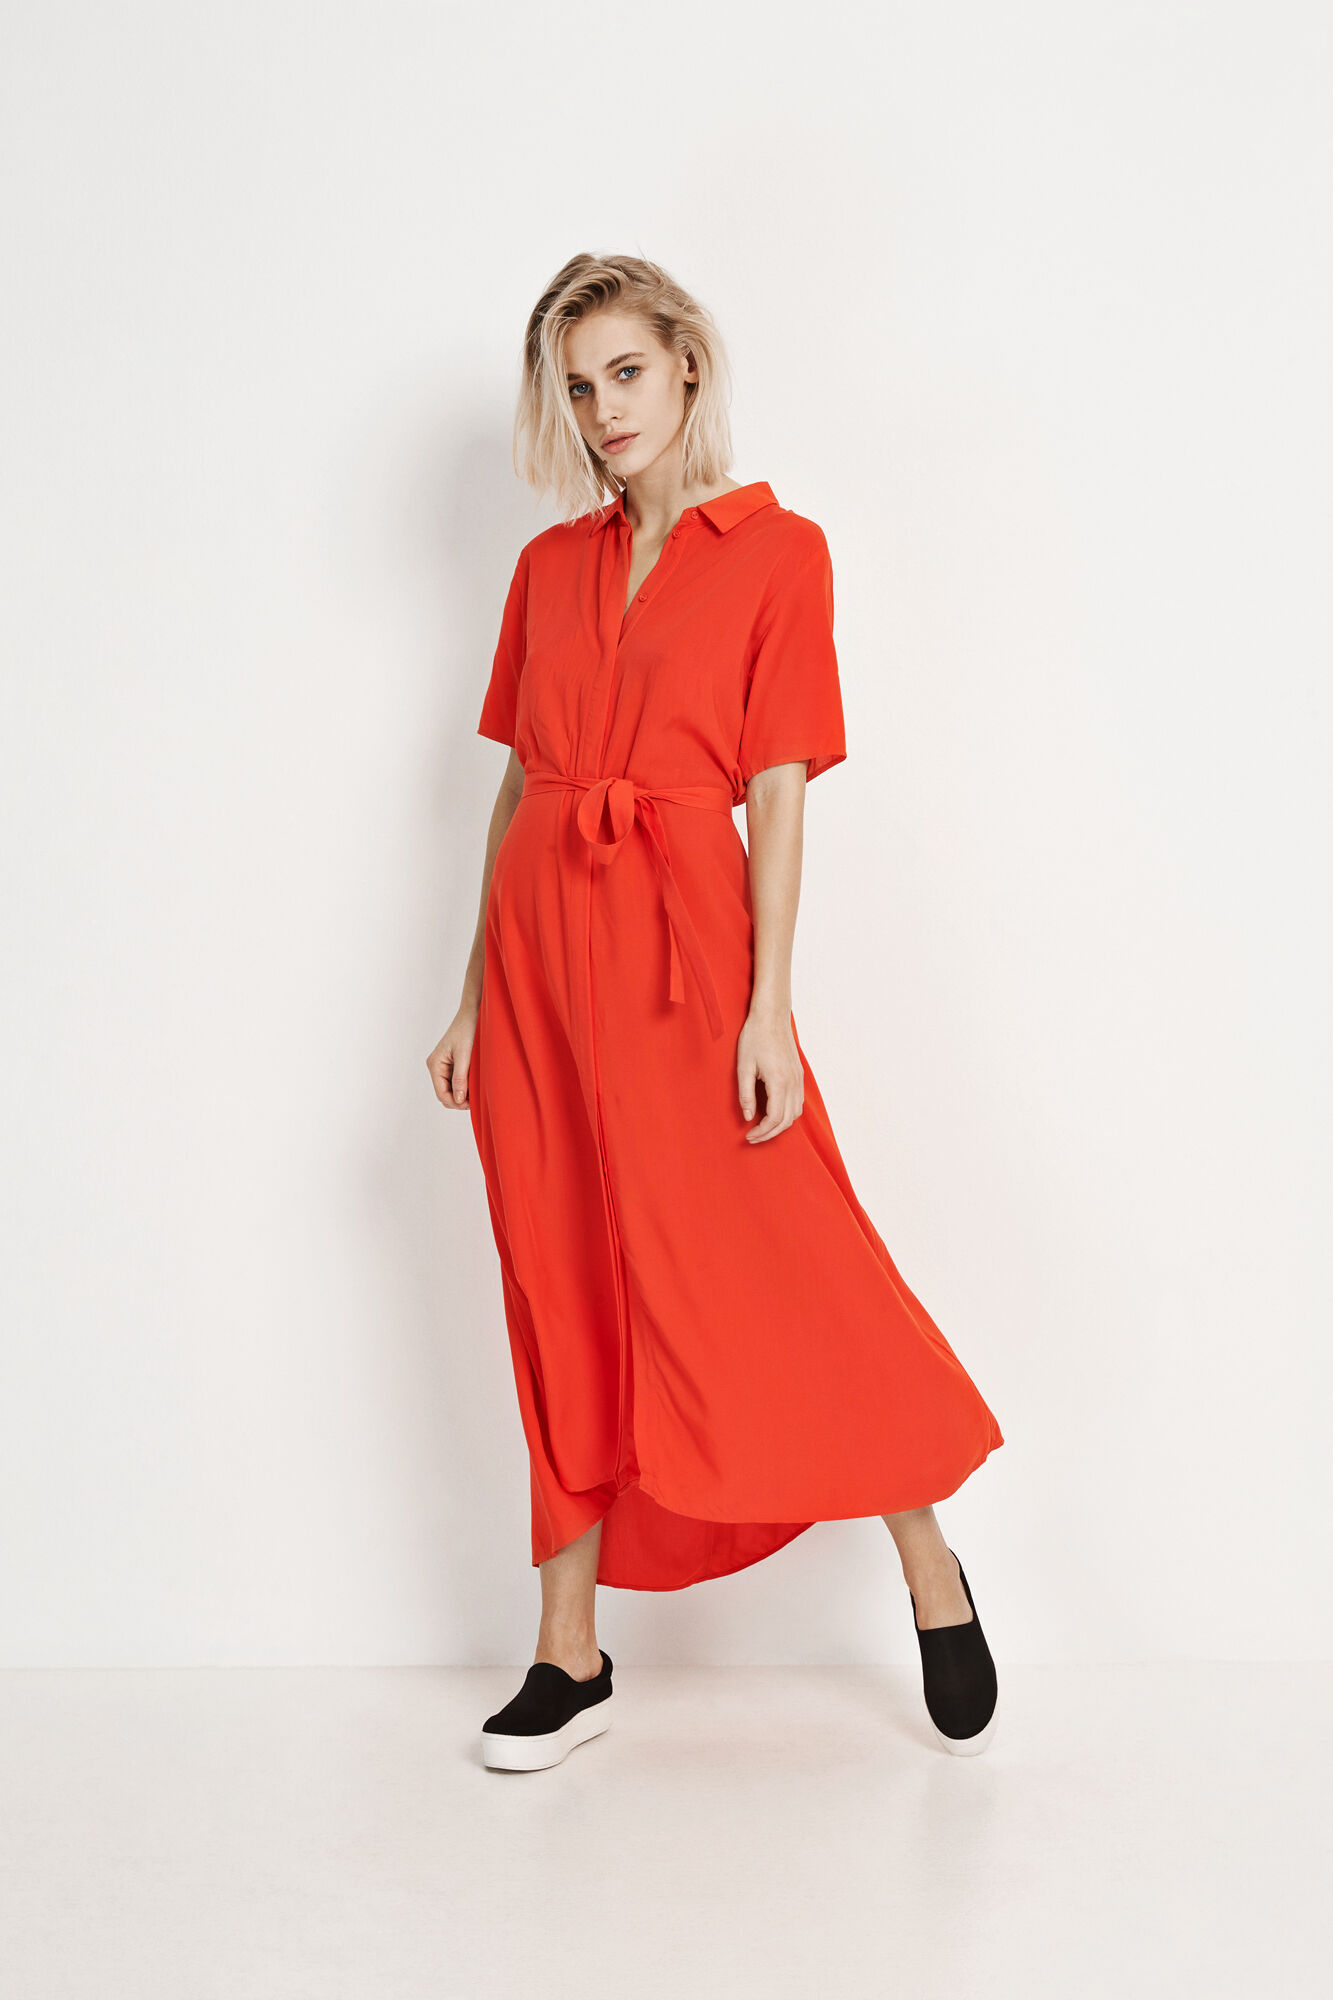 ENTRIBE SS DRESS 6275, HOLIDAY RED